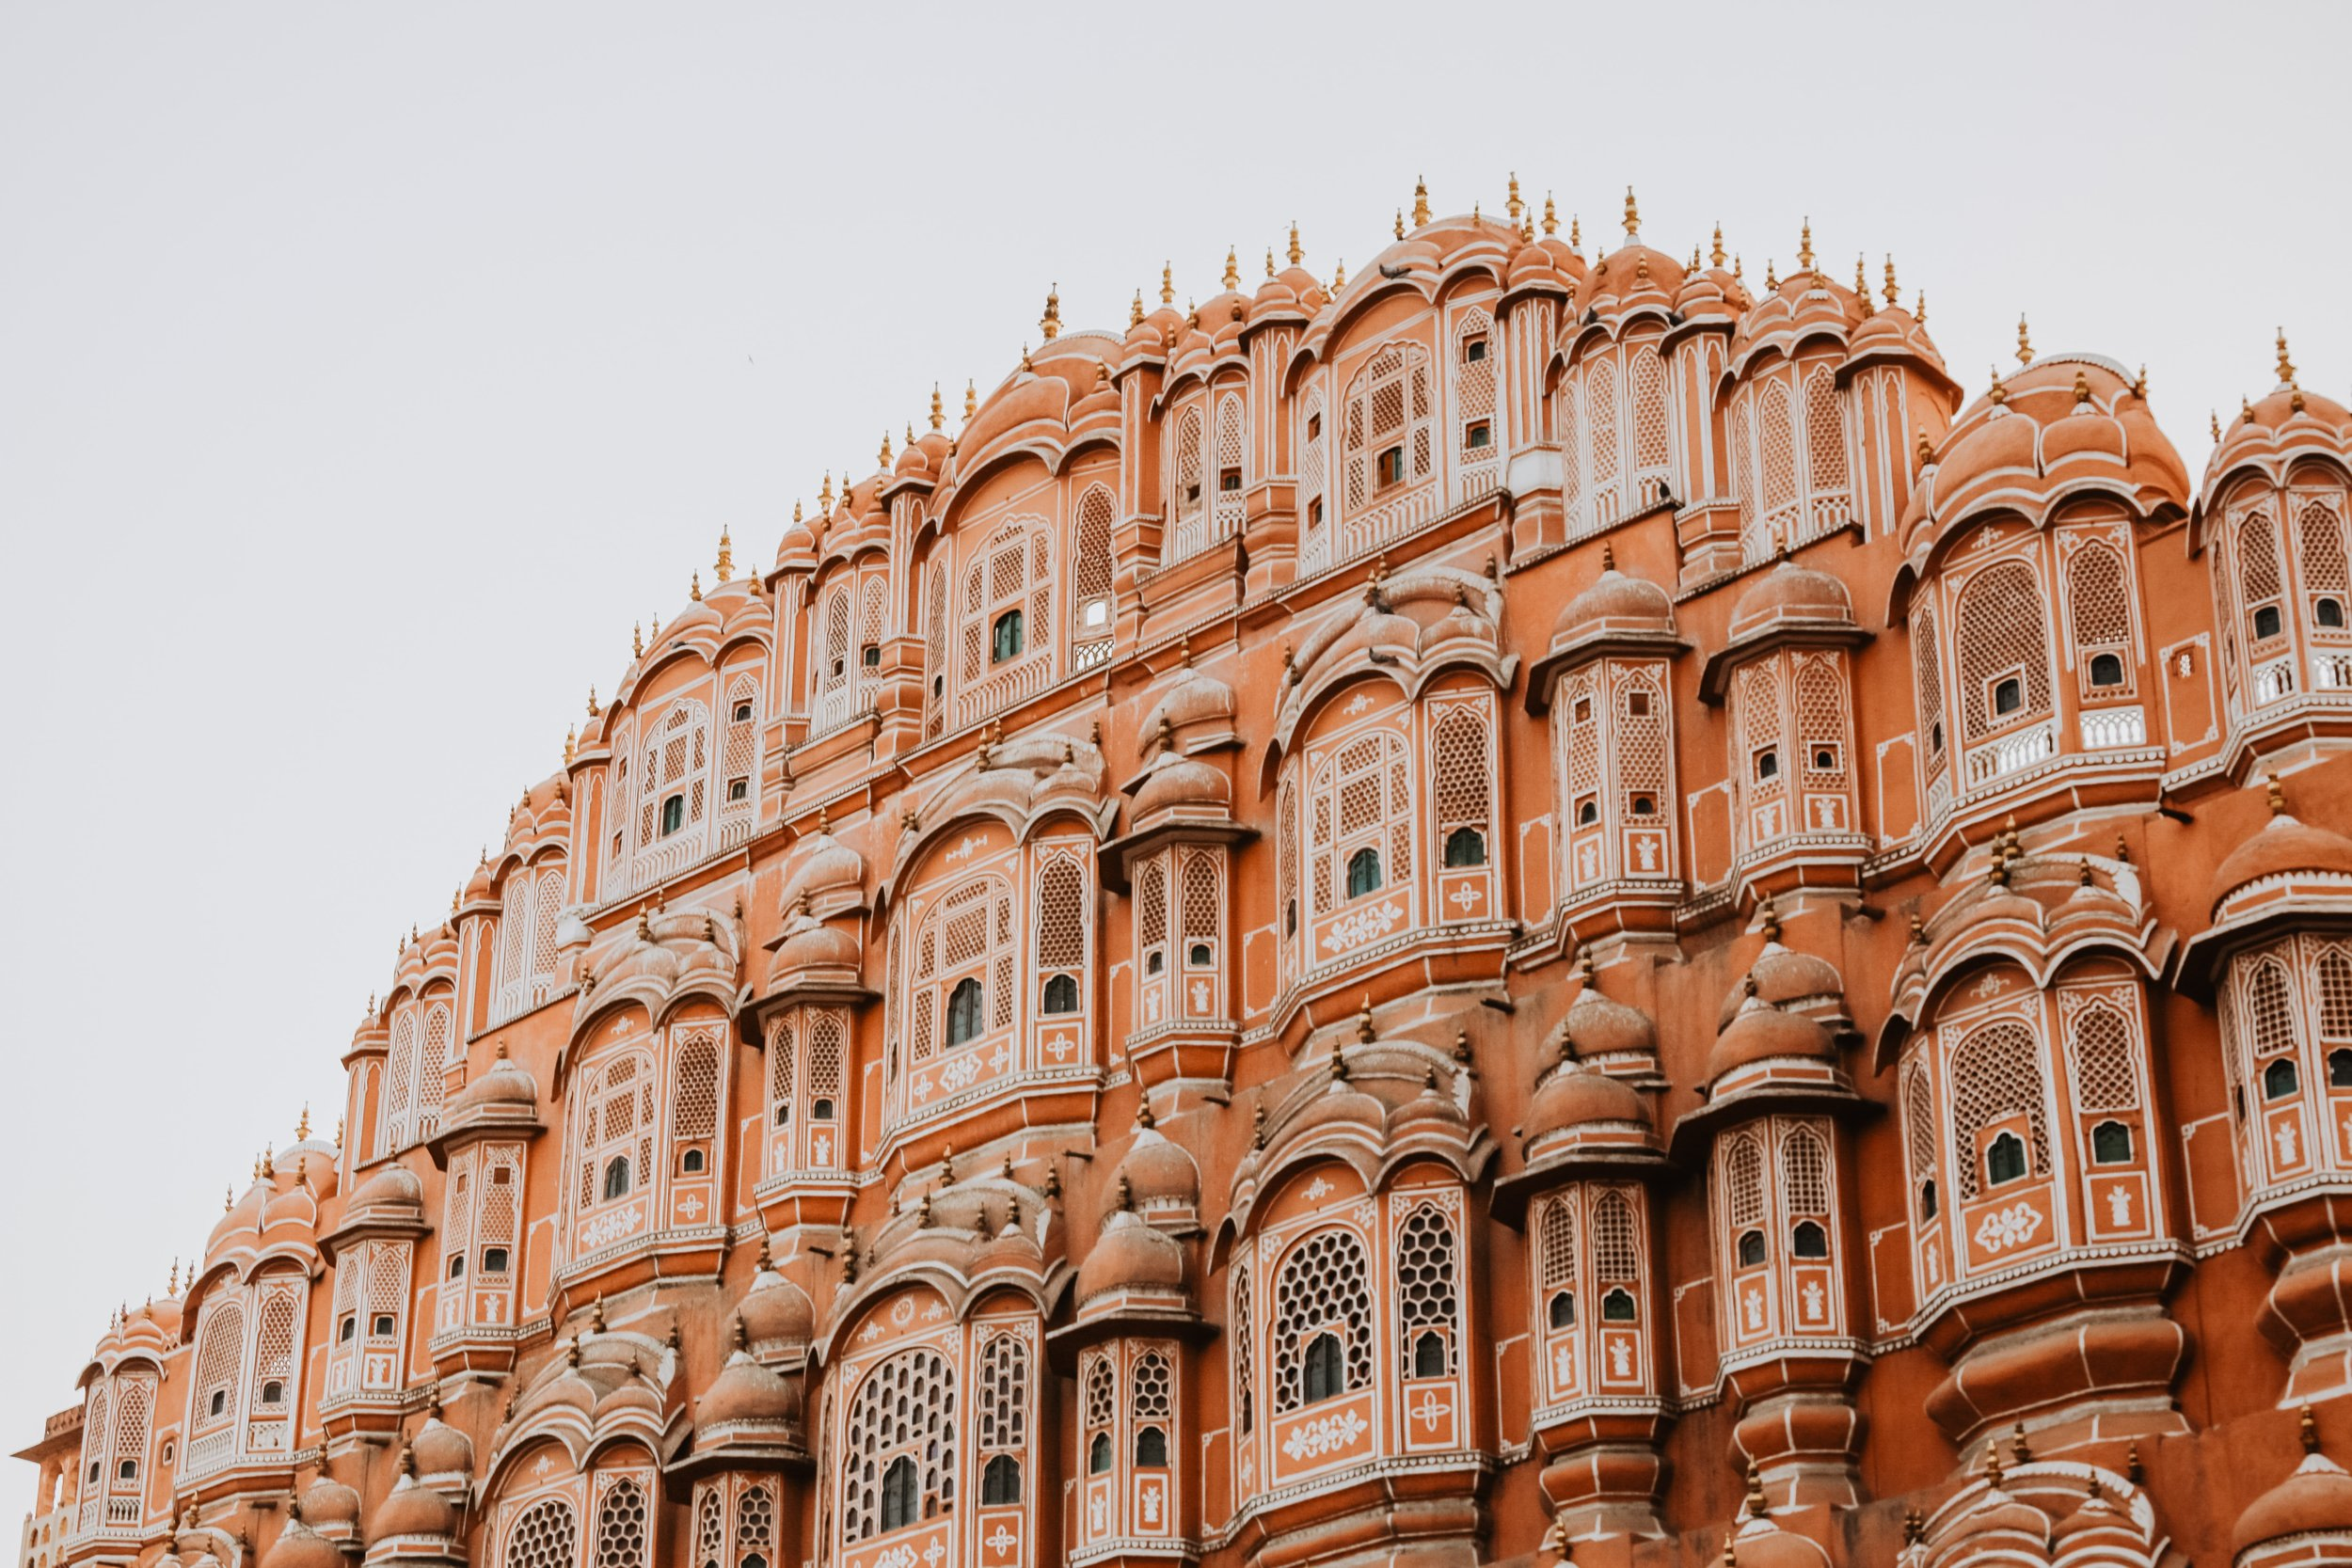 honeycomb Hawa Mahal building